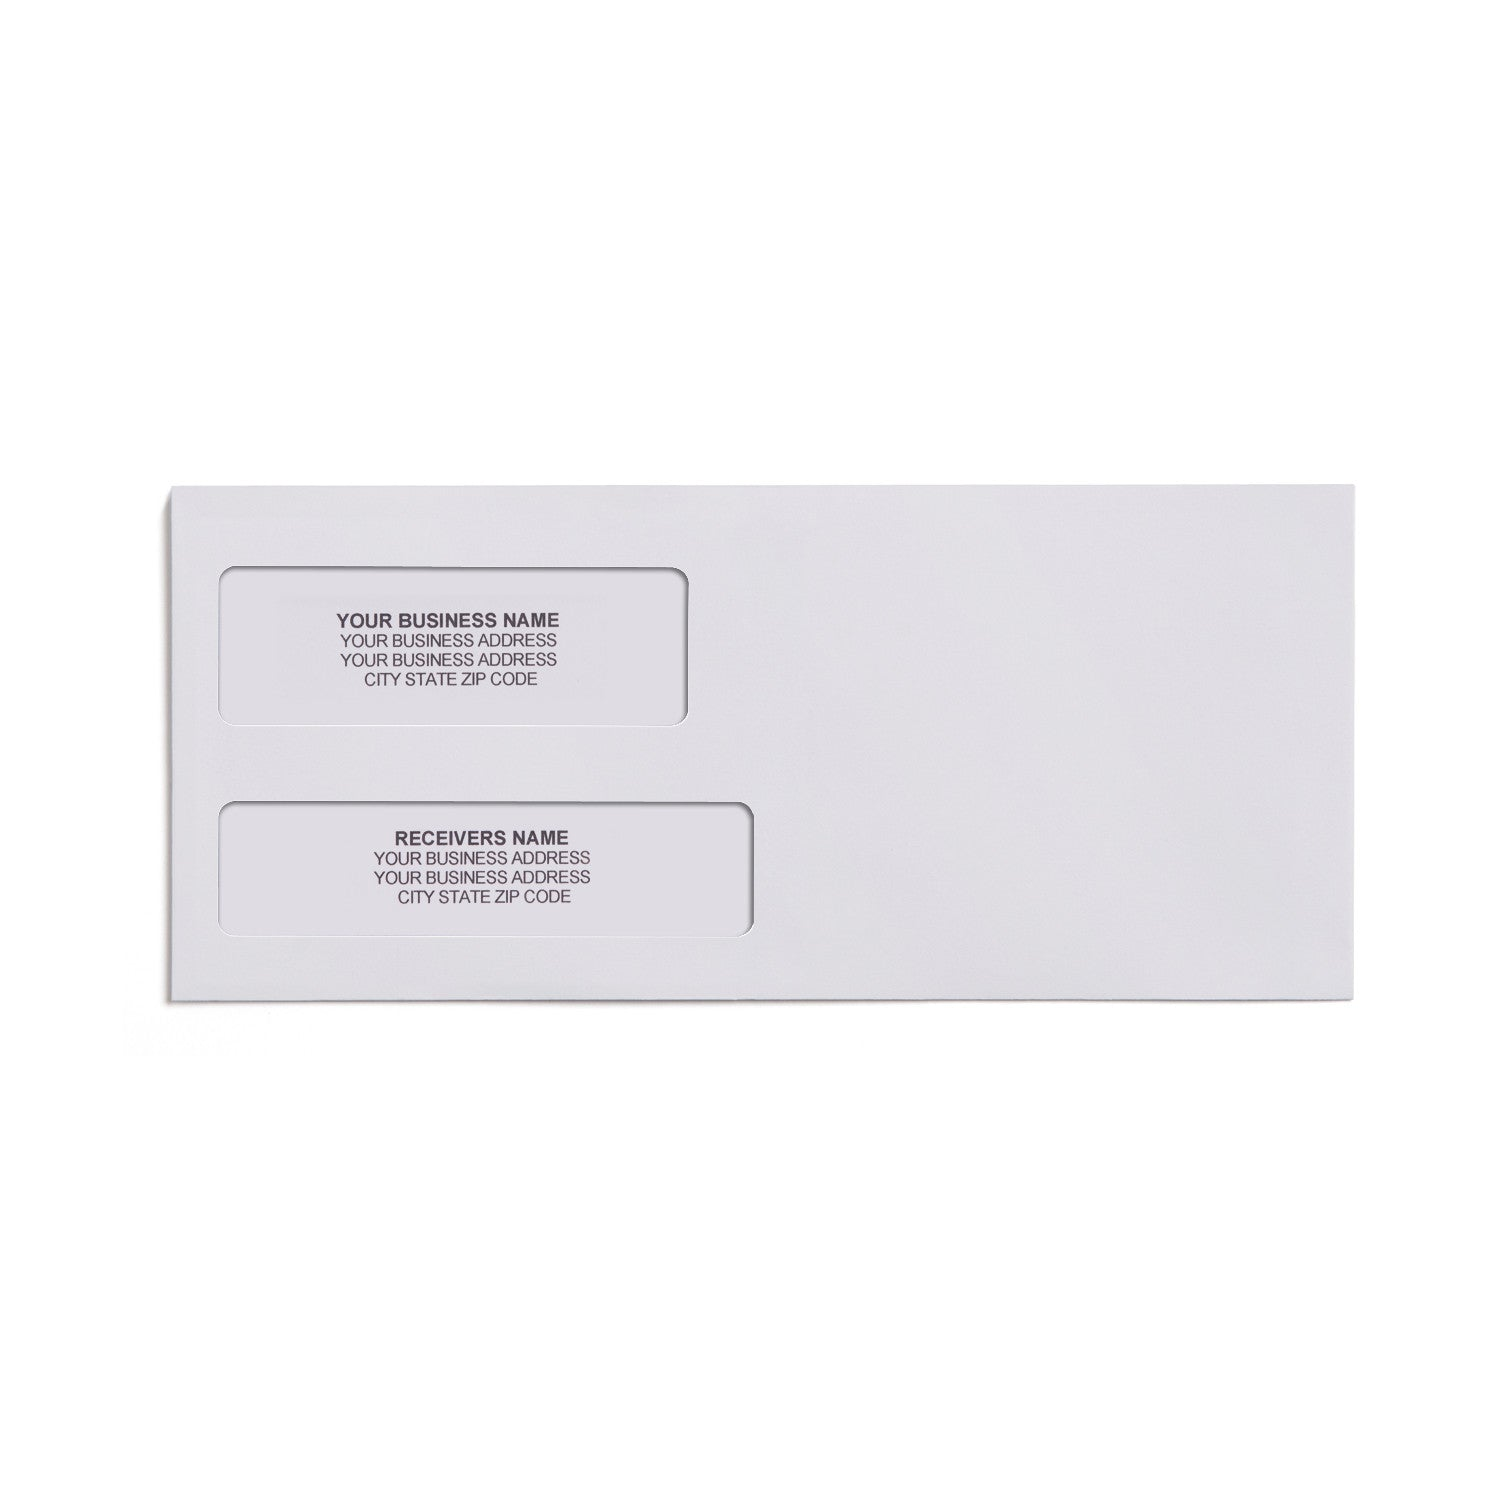 INVOICE Envelopes By Sigma Source X Self - 9 invoice envelopes